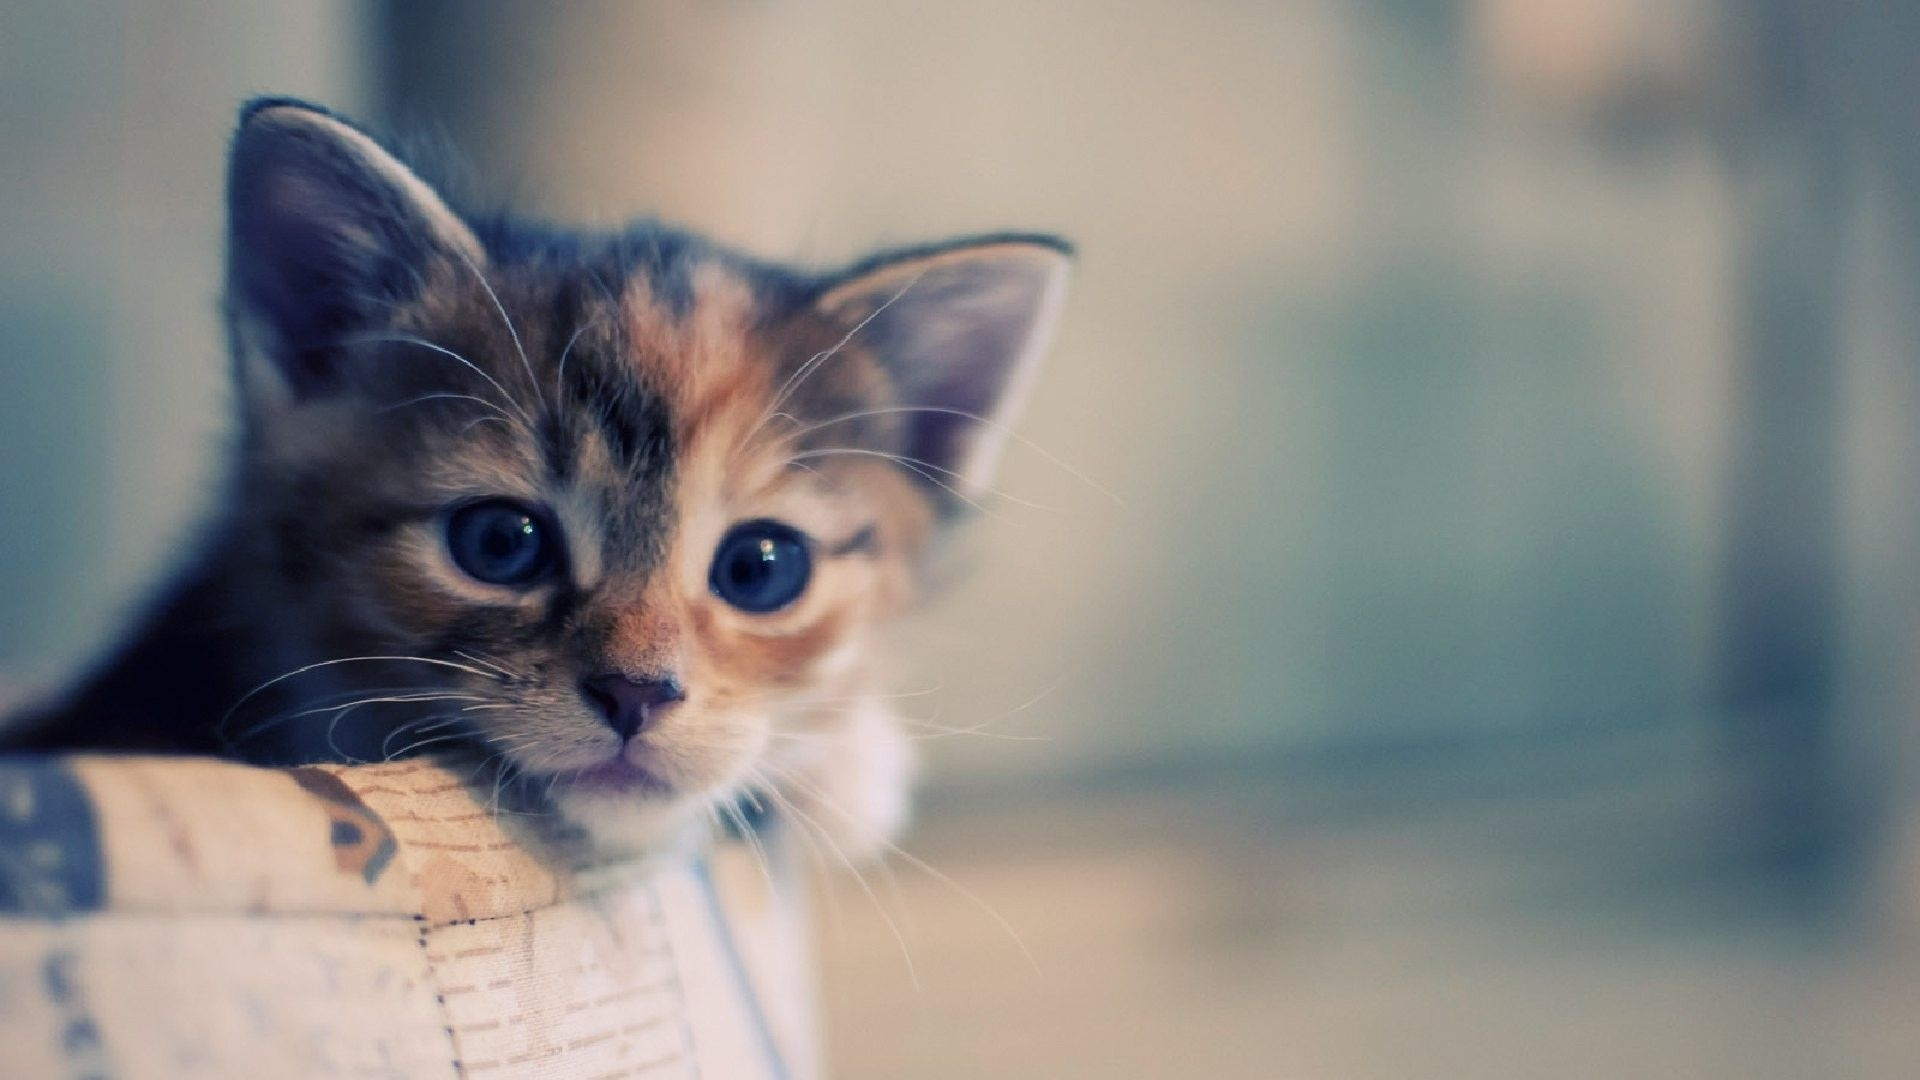 hd cat wallpapers 1920x1080 - google keresés | catttttt | pinterest